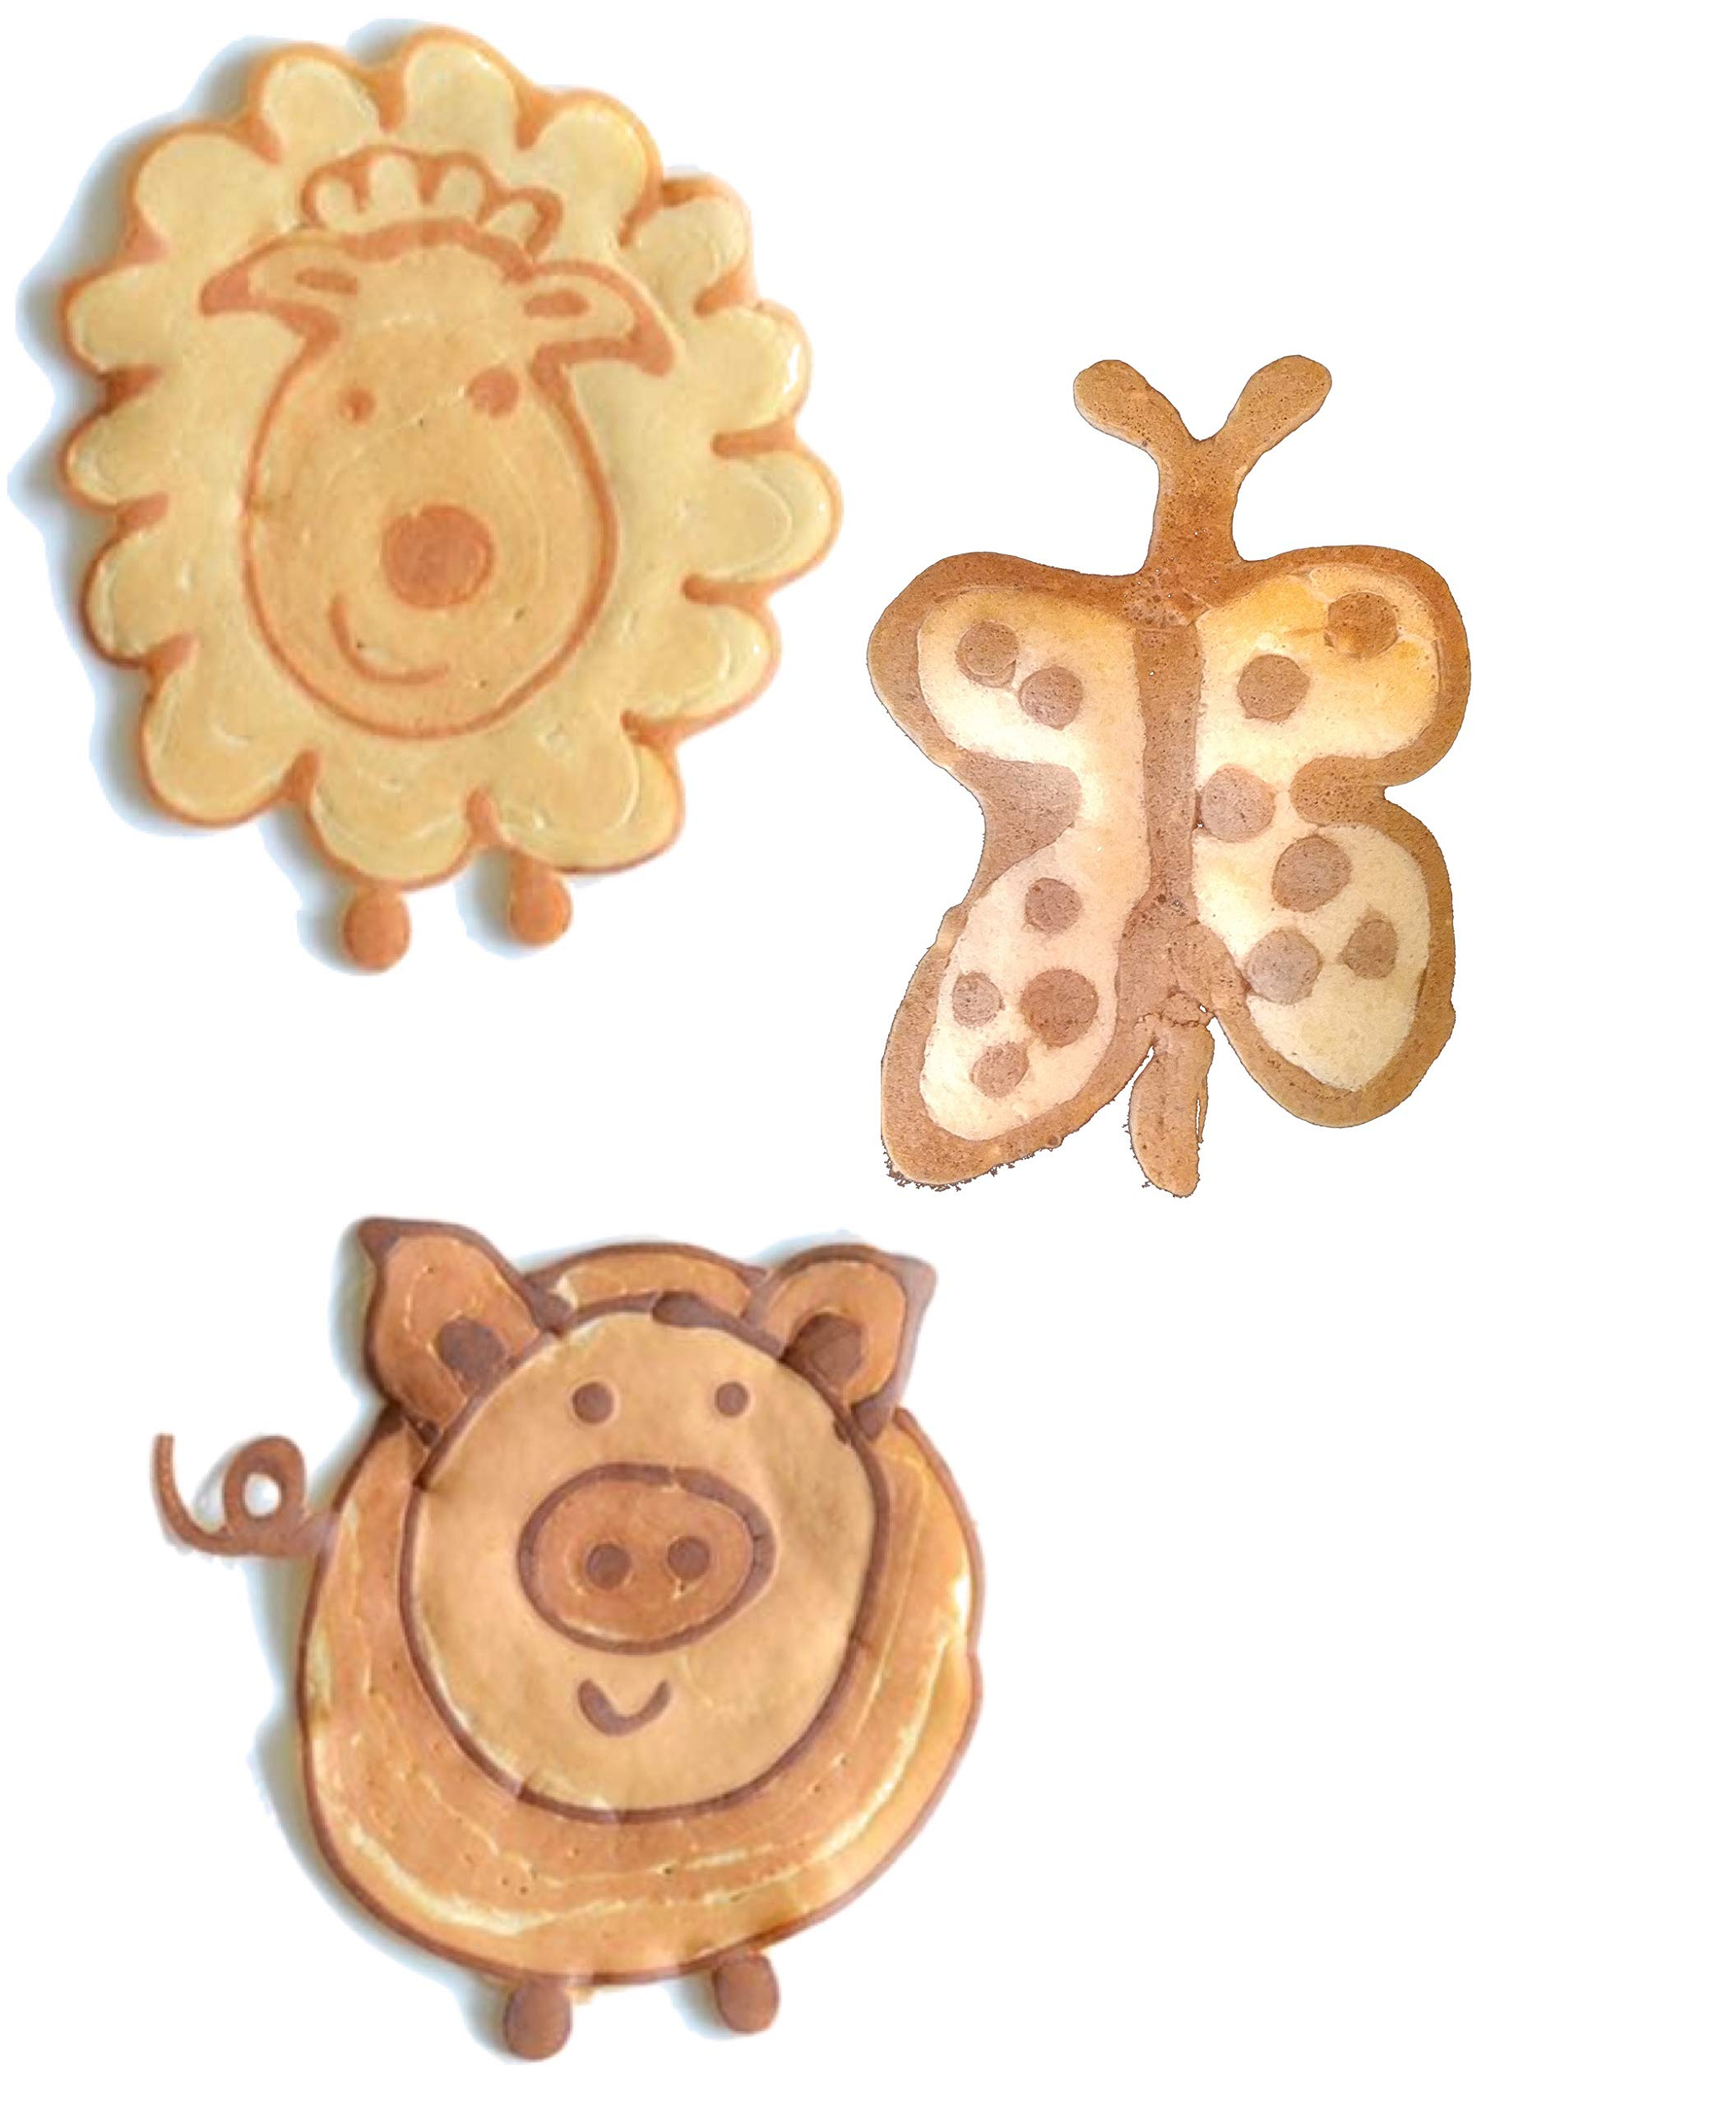 Pancake Party! The Ultimate Pancake Art Making Set for Kids - An excellent educational gift for children, young chefs, bakers! Great cooking, baking pancake making kit for boys and girls! by Made for Me (Image #7)